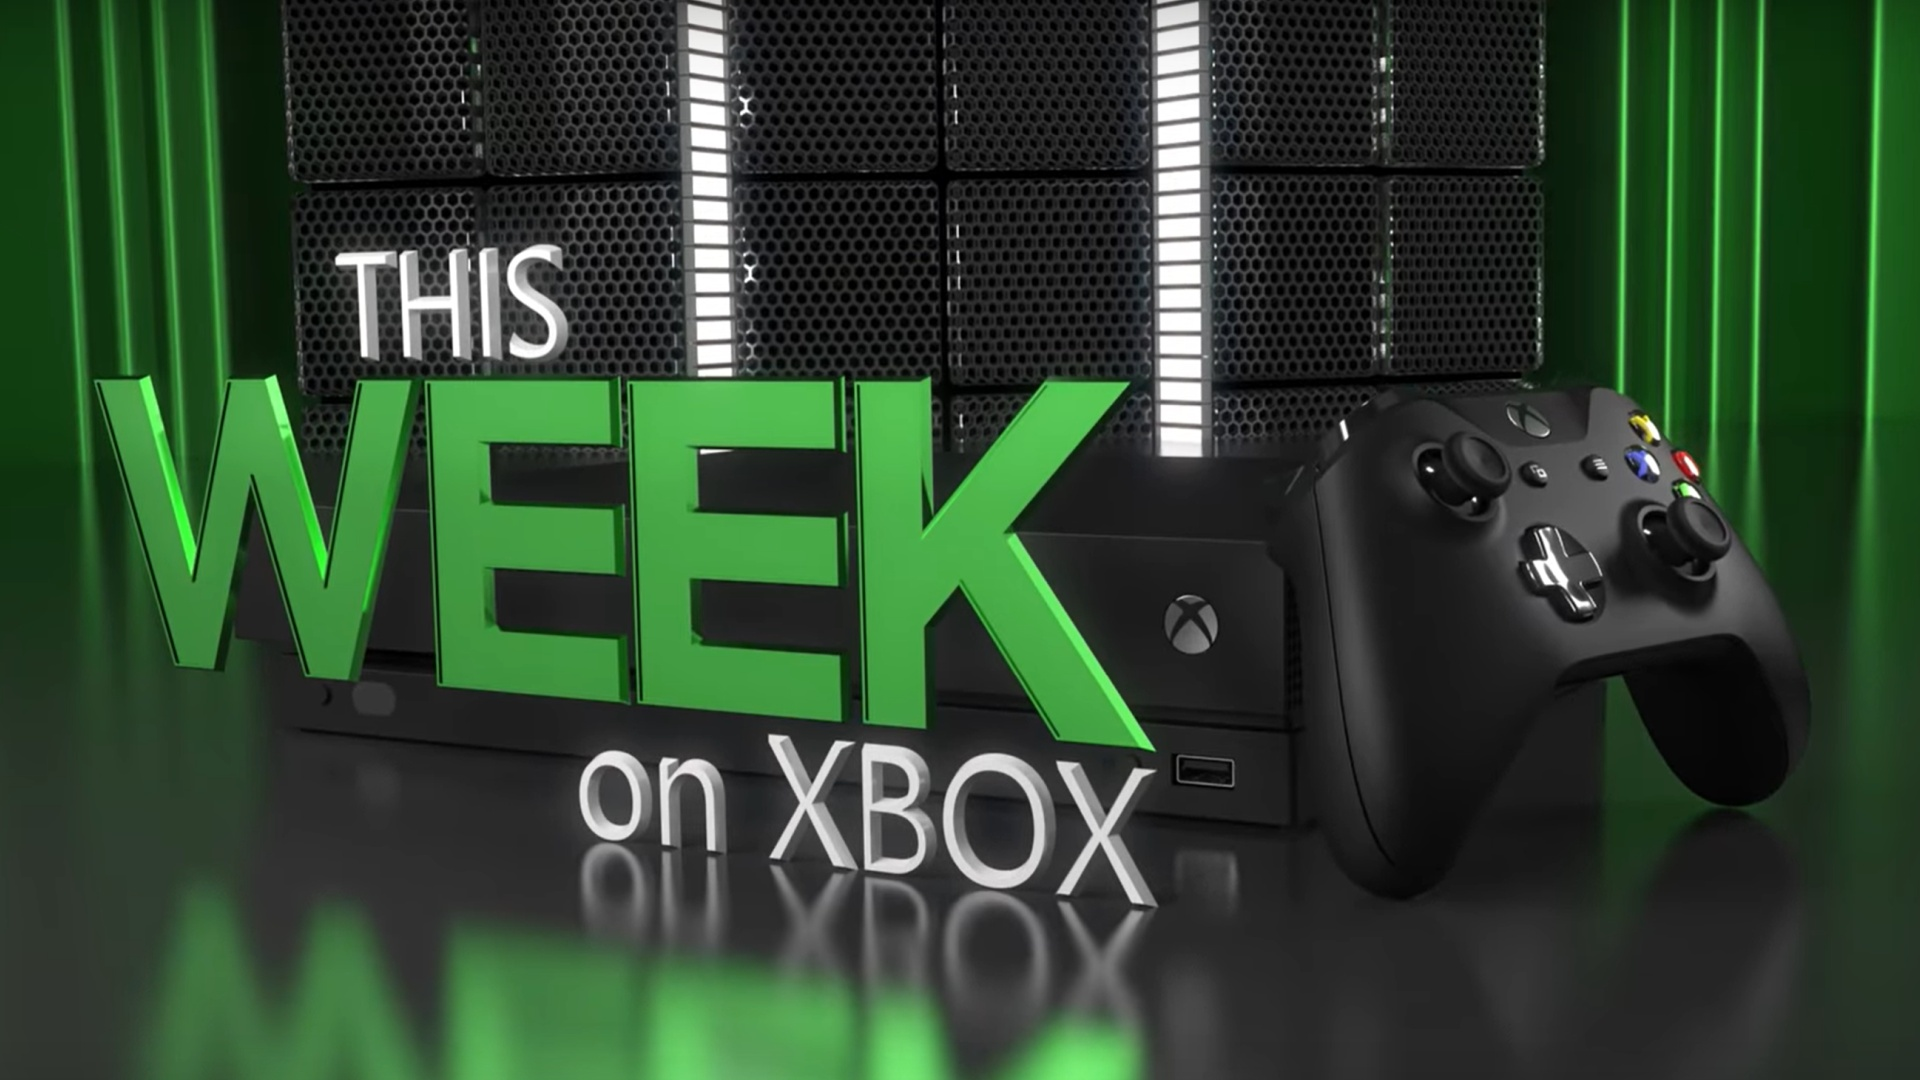 Video For This Week on Xbox: January 10, 2020